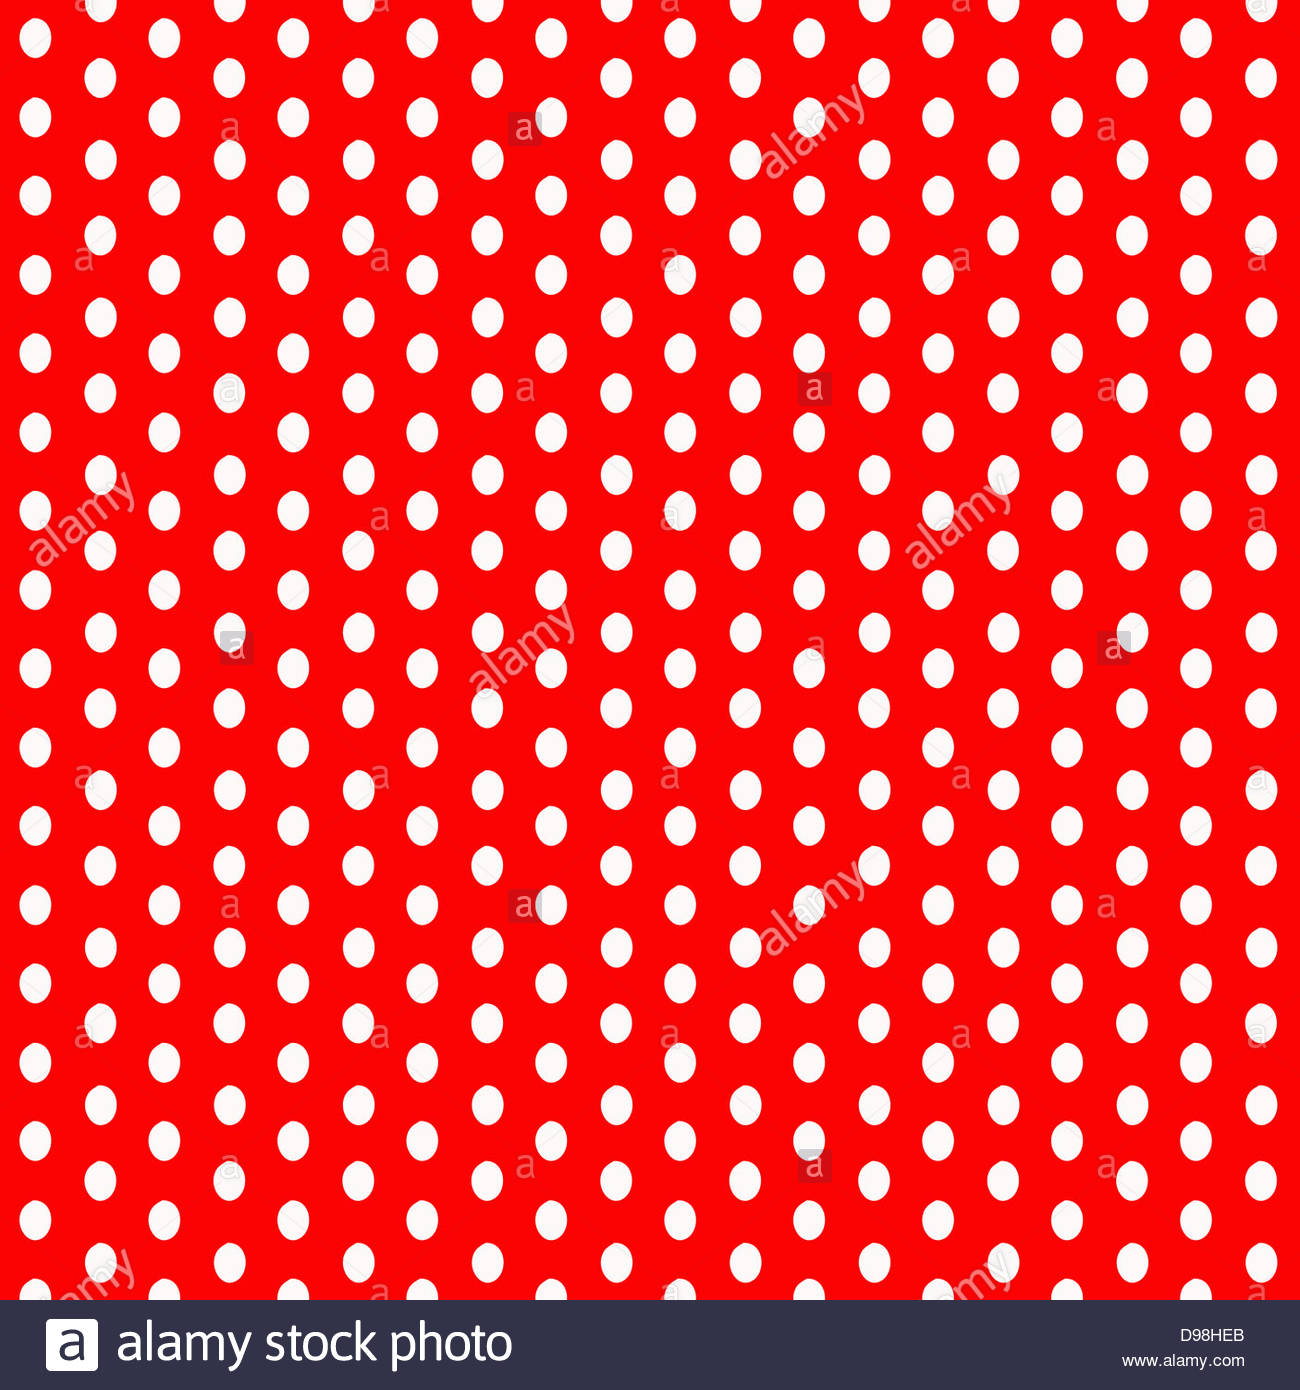 digital composite background white polka dots on a red